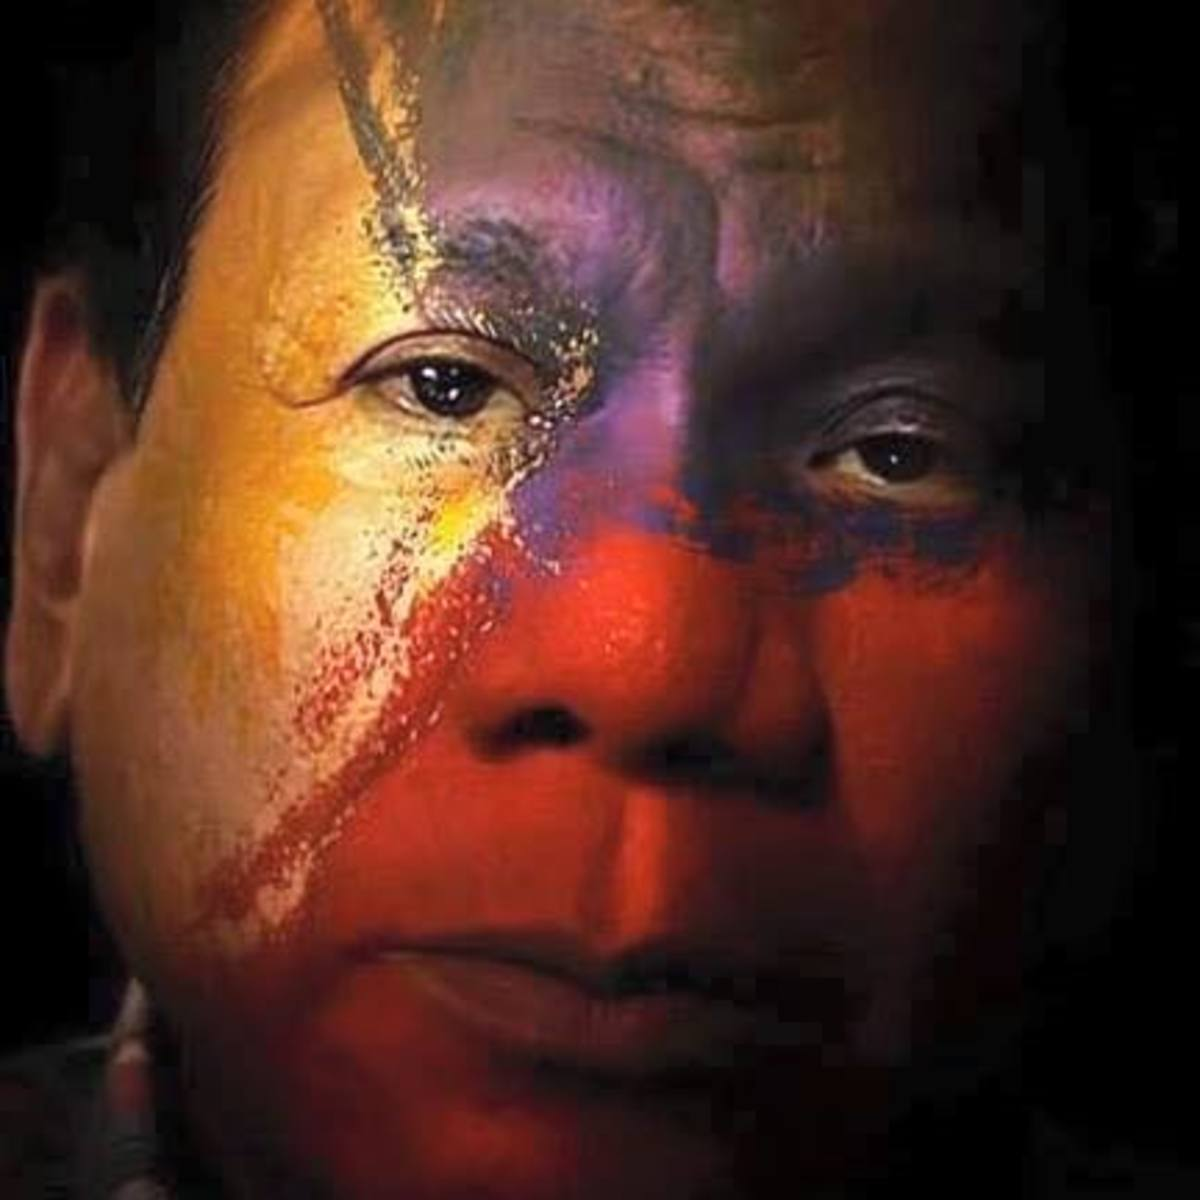 The Philippine Flag overlays President Duterte's face in this digital art presentation